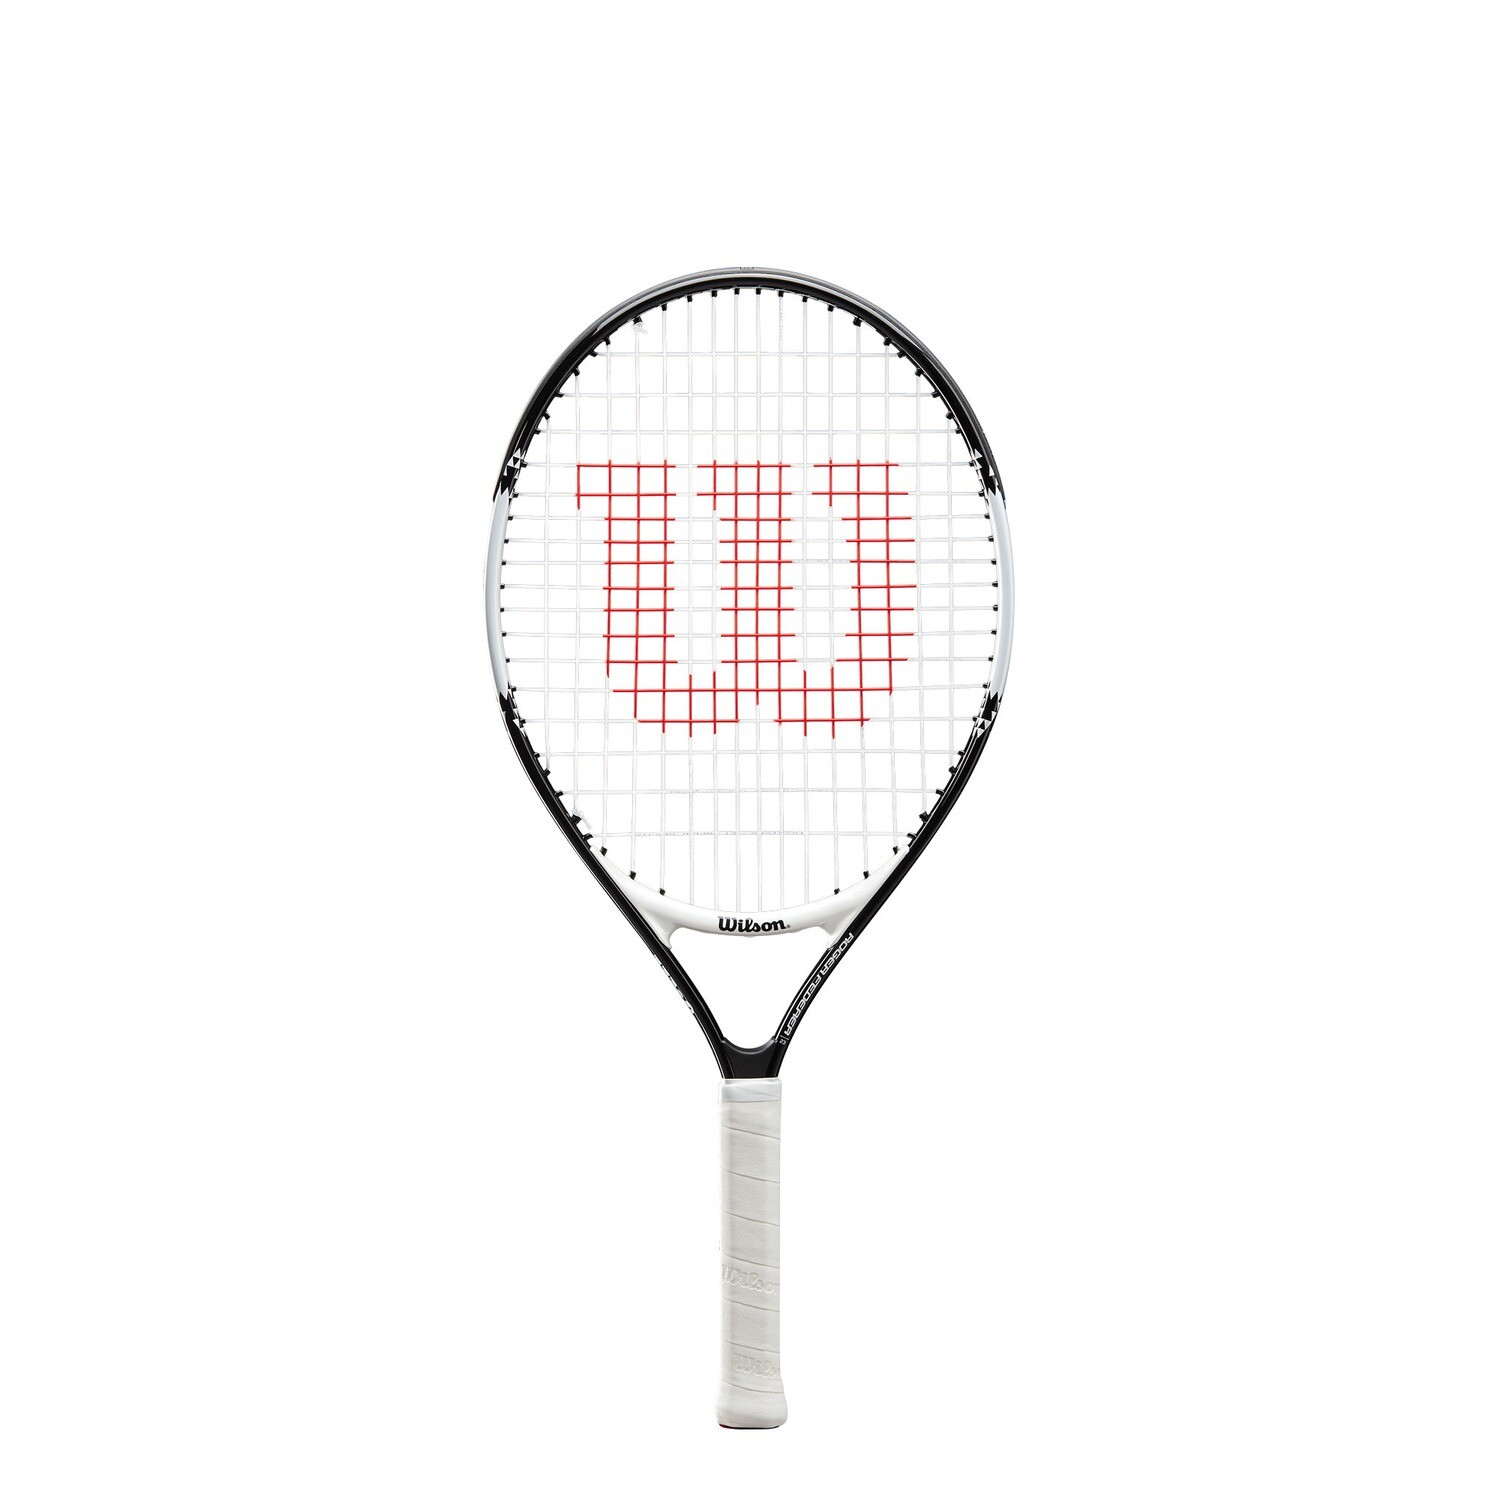 Wilson Roger Federer Junior Tennis Racket - 23 inch